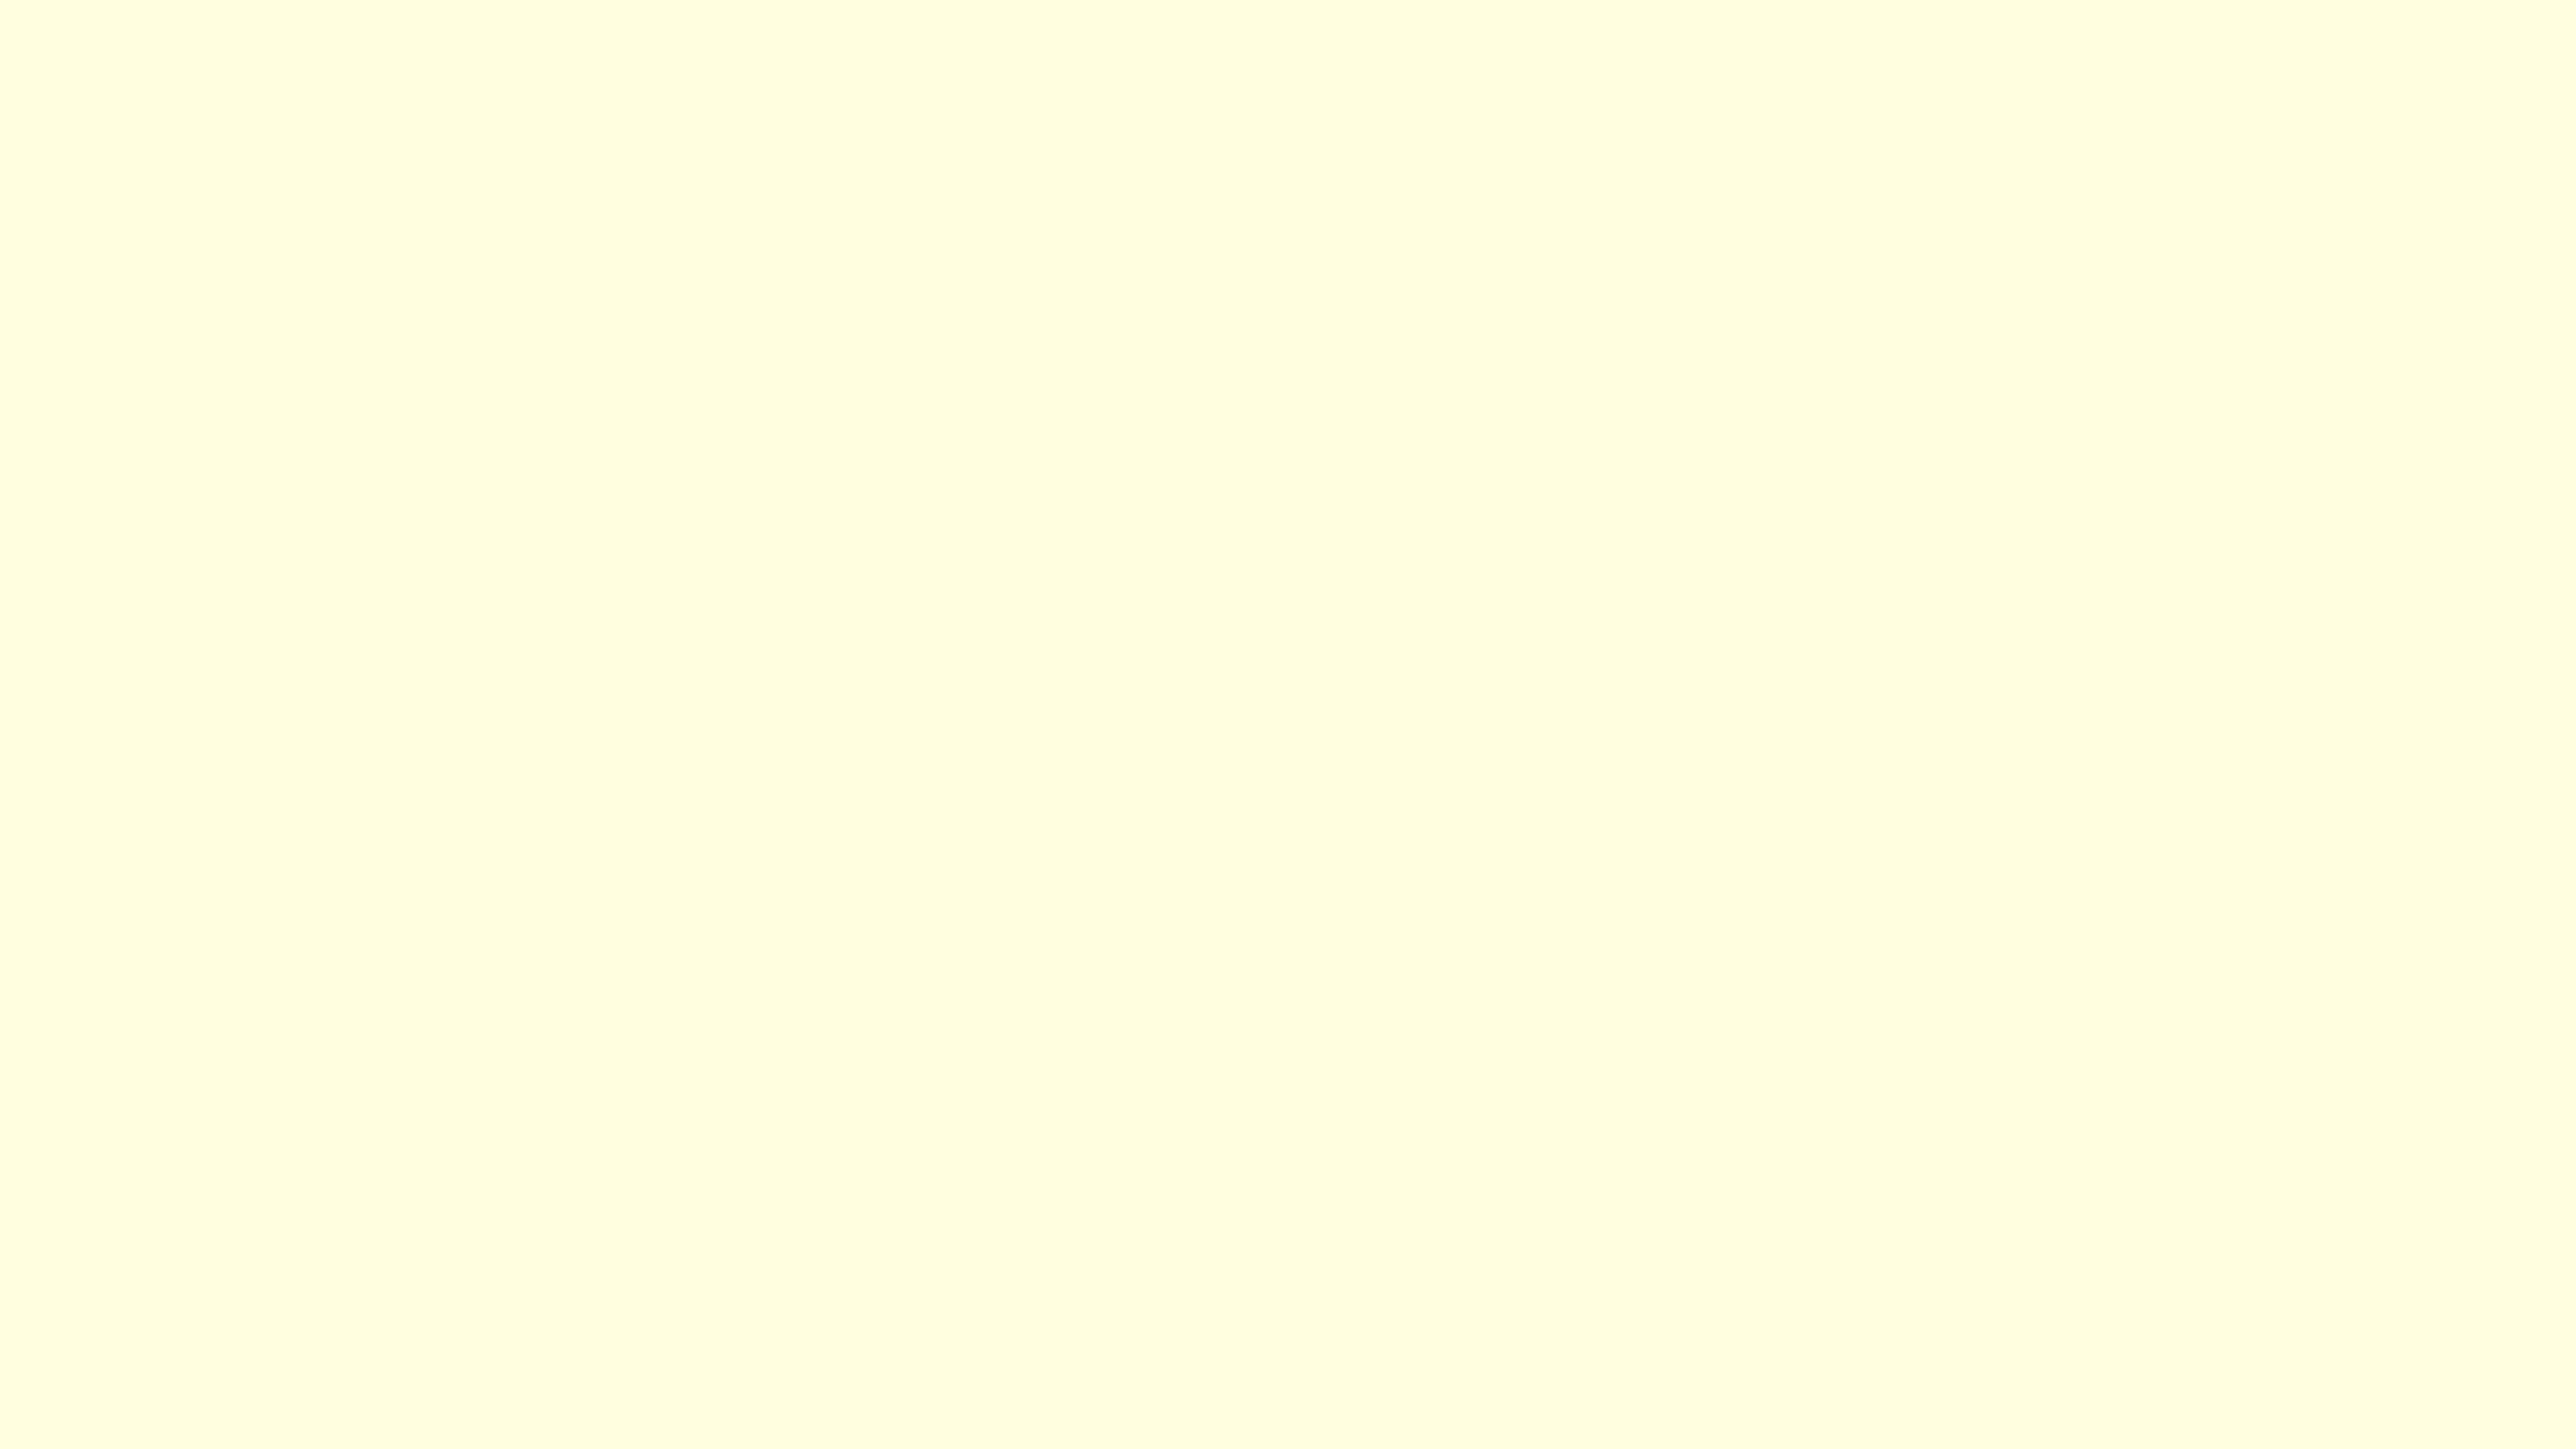 7680x4320 Light Yellow Solid Color Background